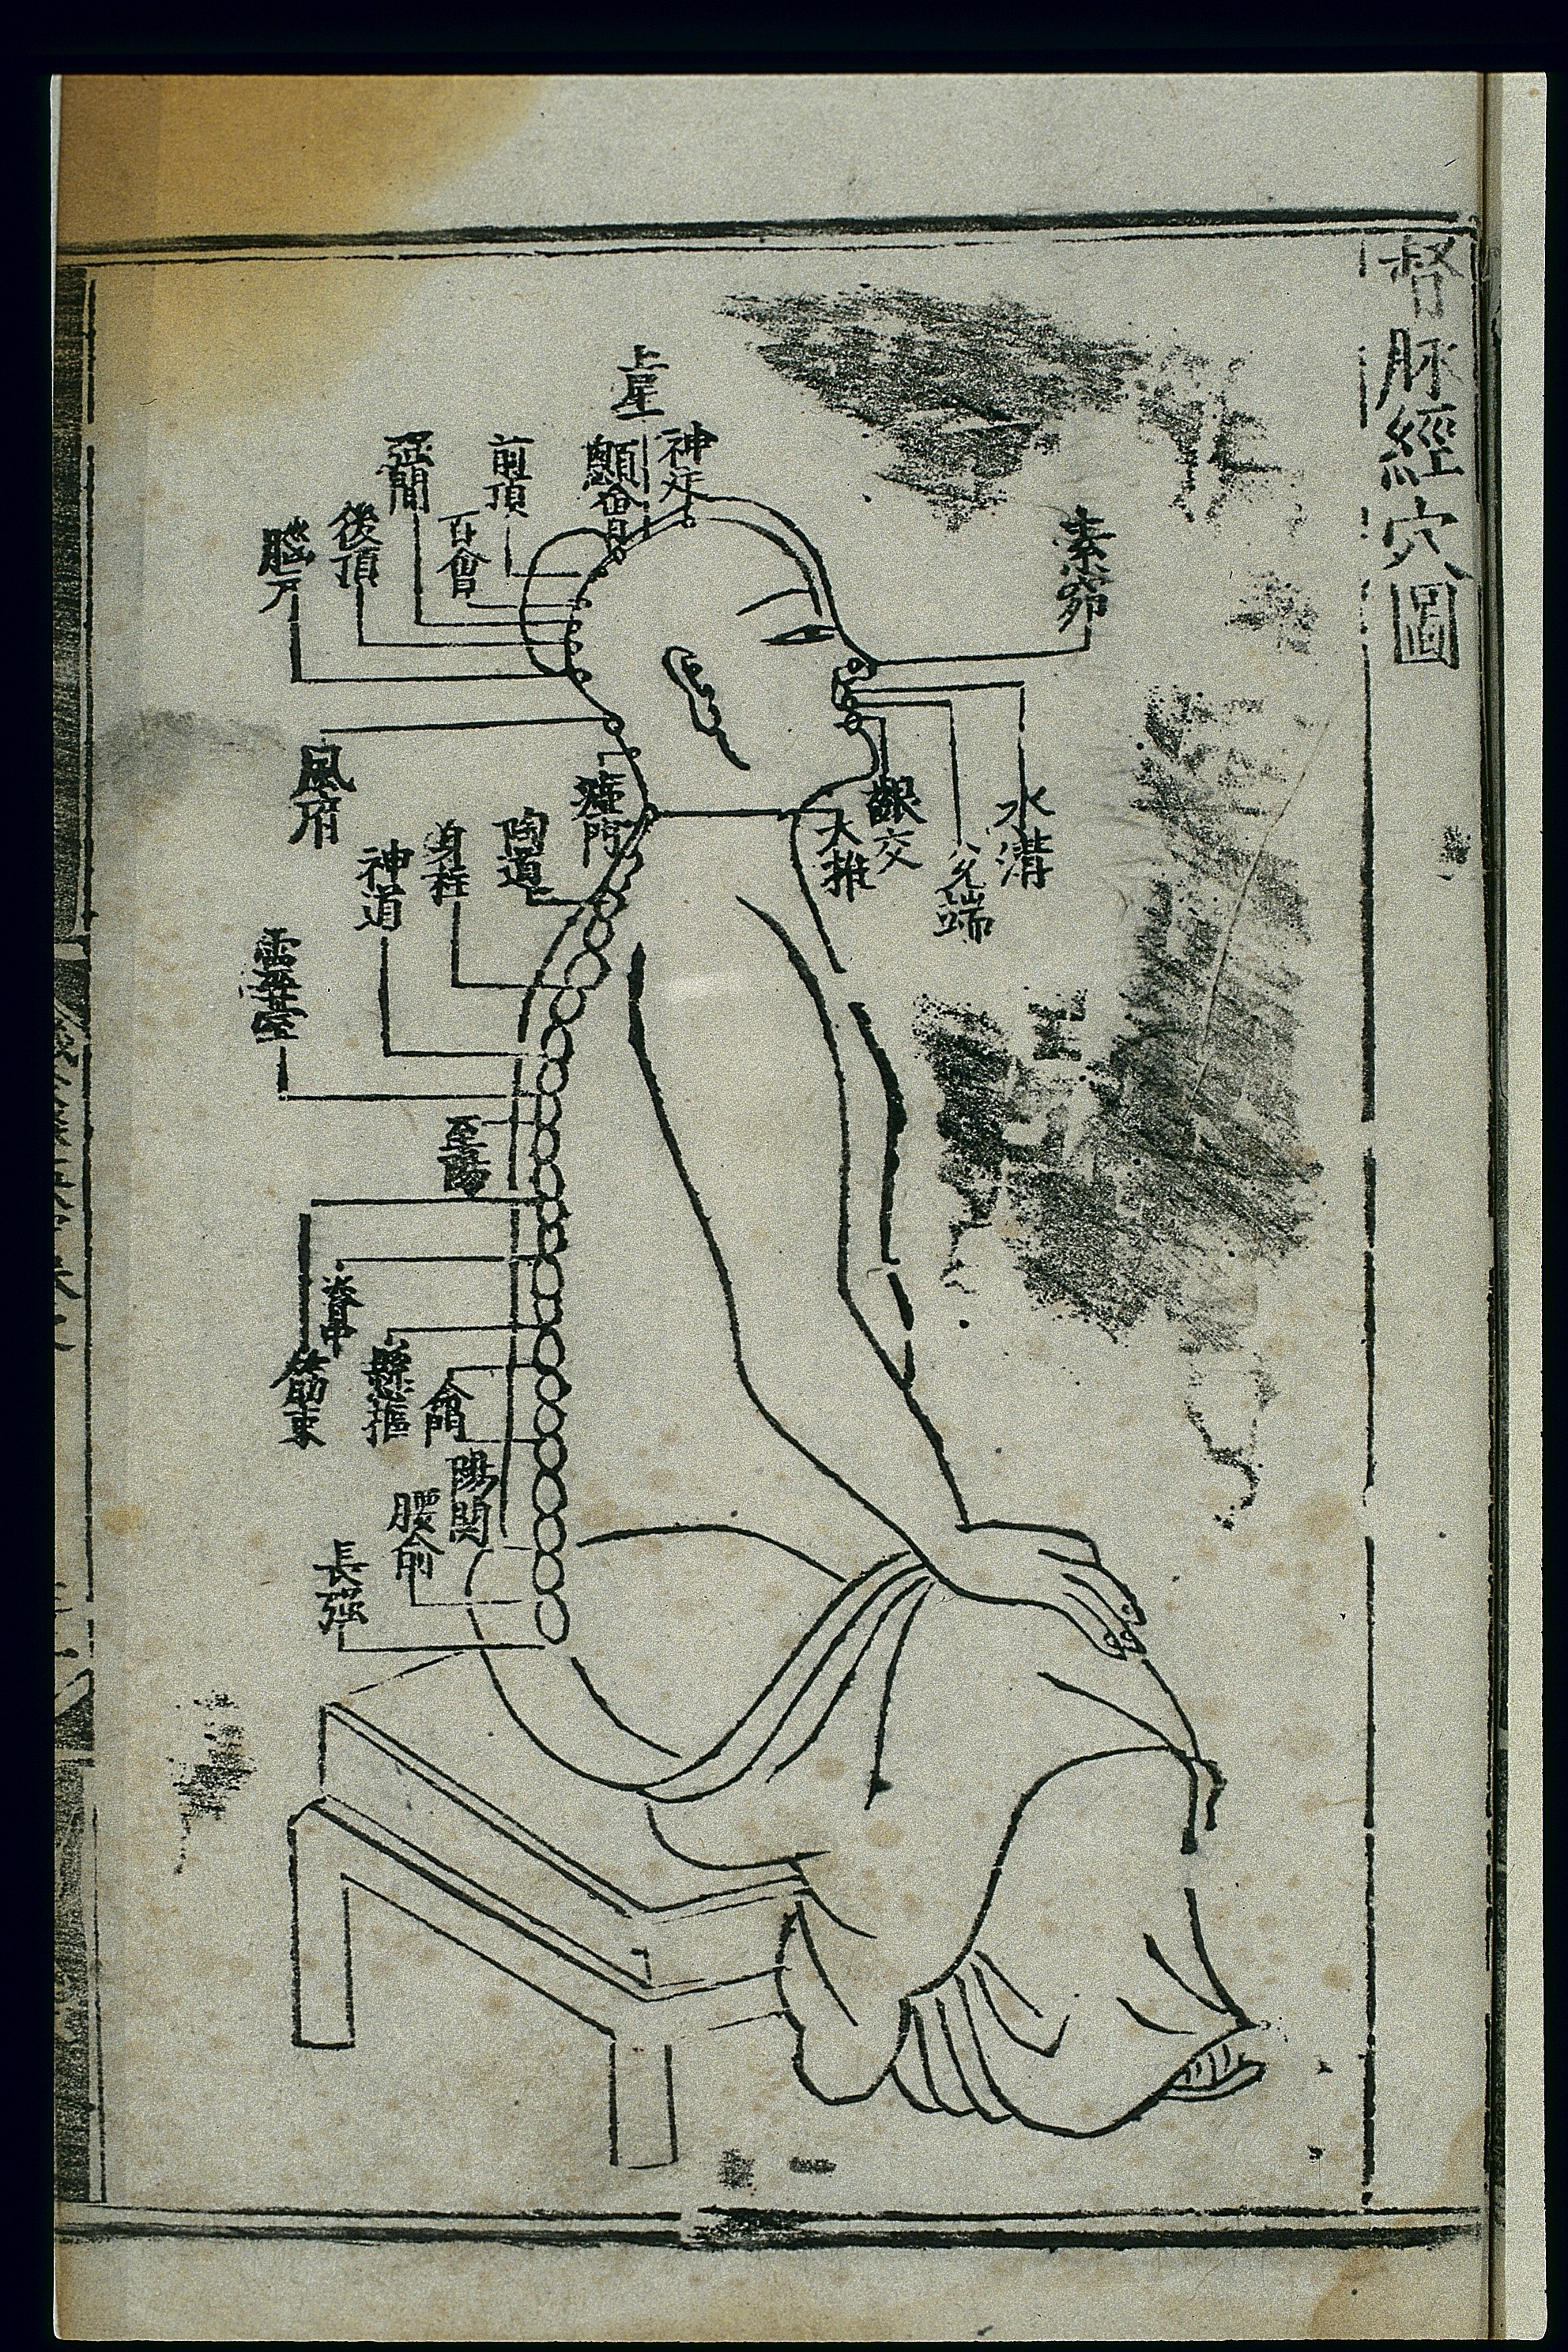 Chinese Horoscope Chart: Acupuncture chart dumai (Governor Vessel) Chinese Wellcome ,Chart